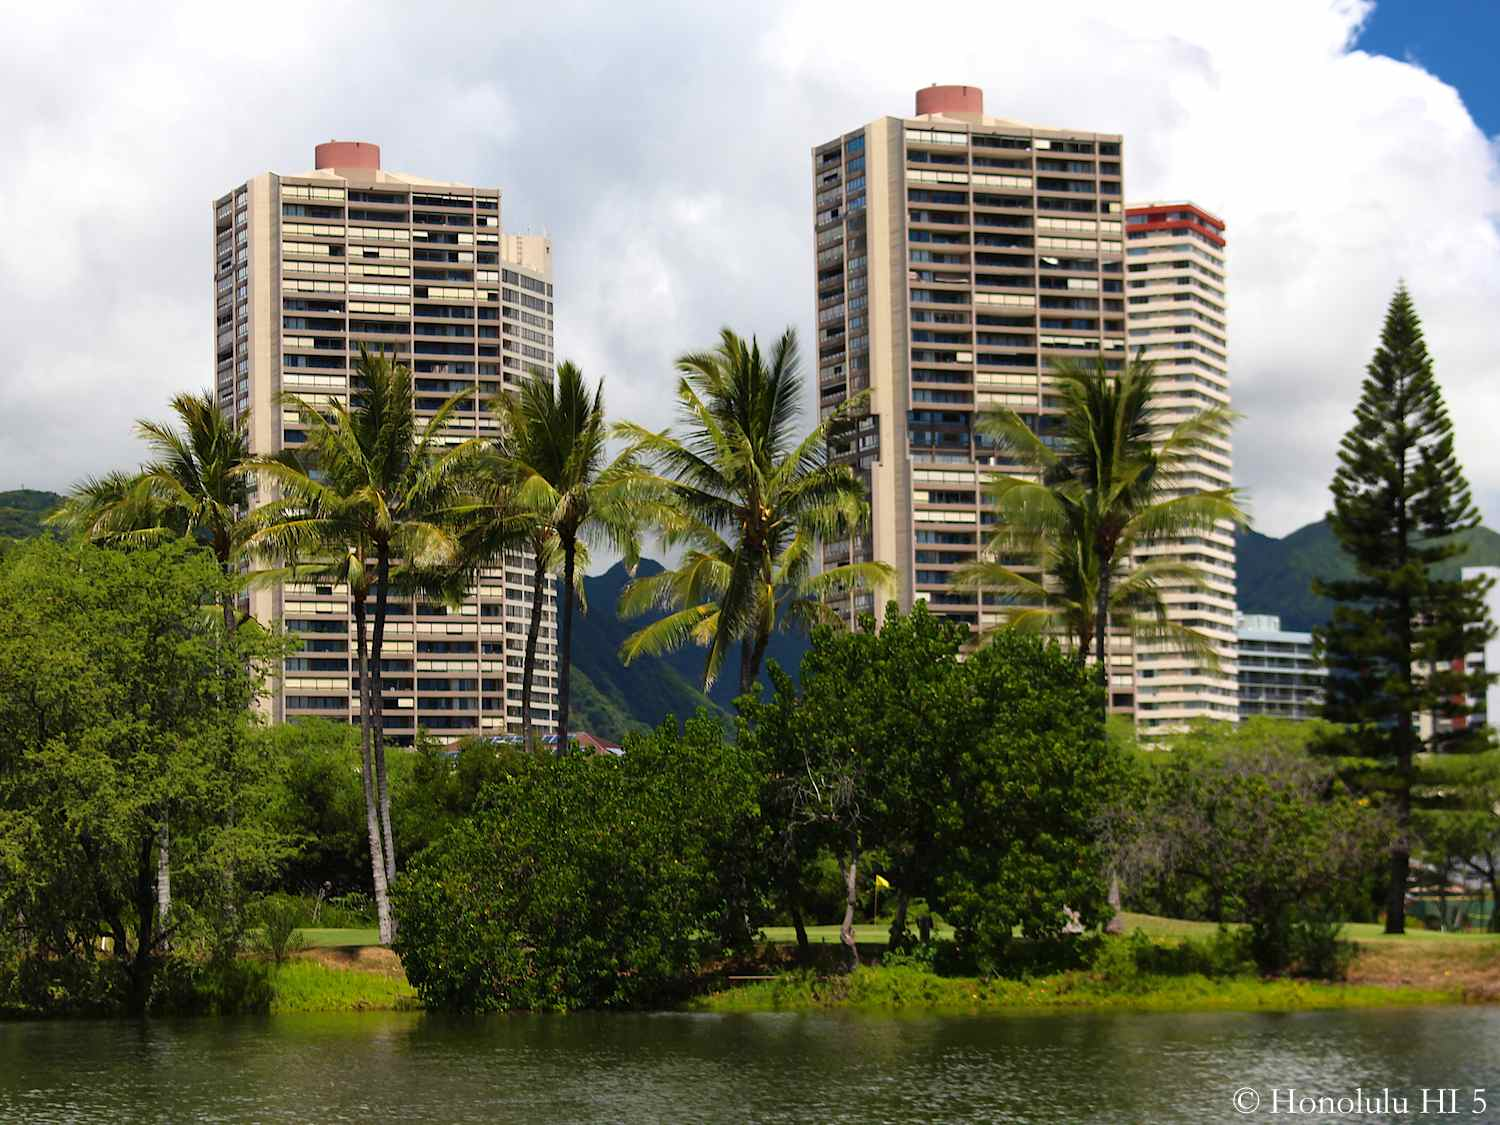 Royal Iolani Condos in Honolulu Seen From Waikiki Side